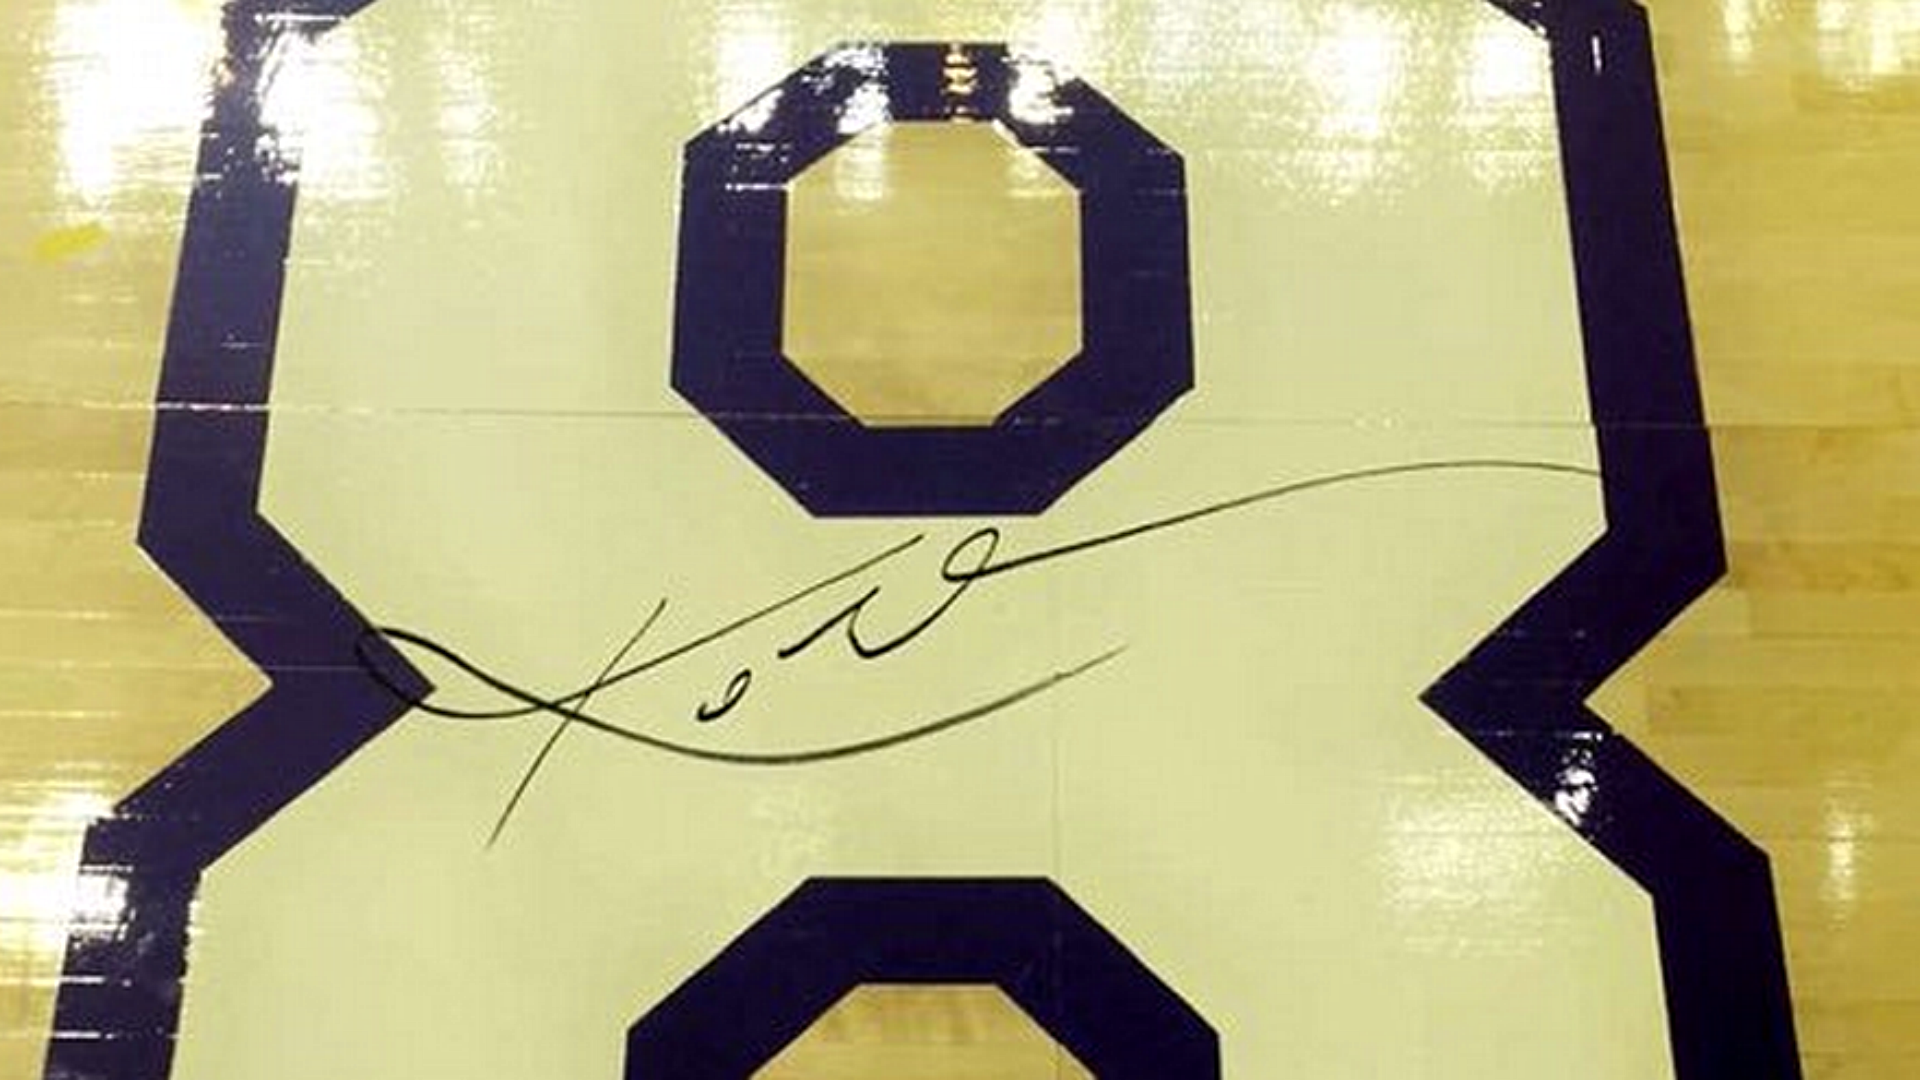 ggooat Piece of Staples Center court signed by Kobe Bryant sells for